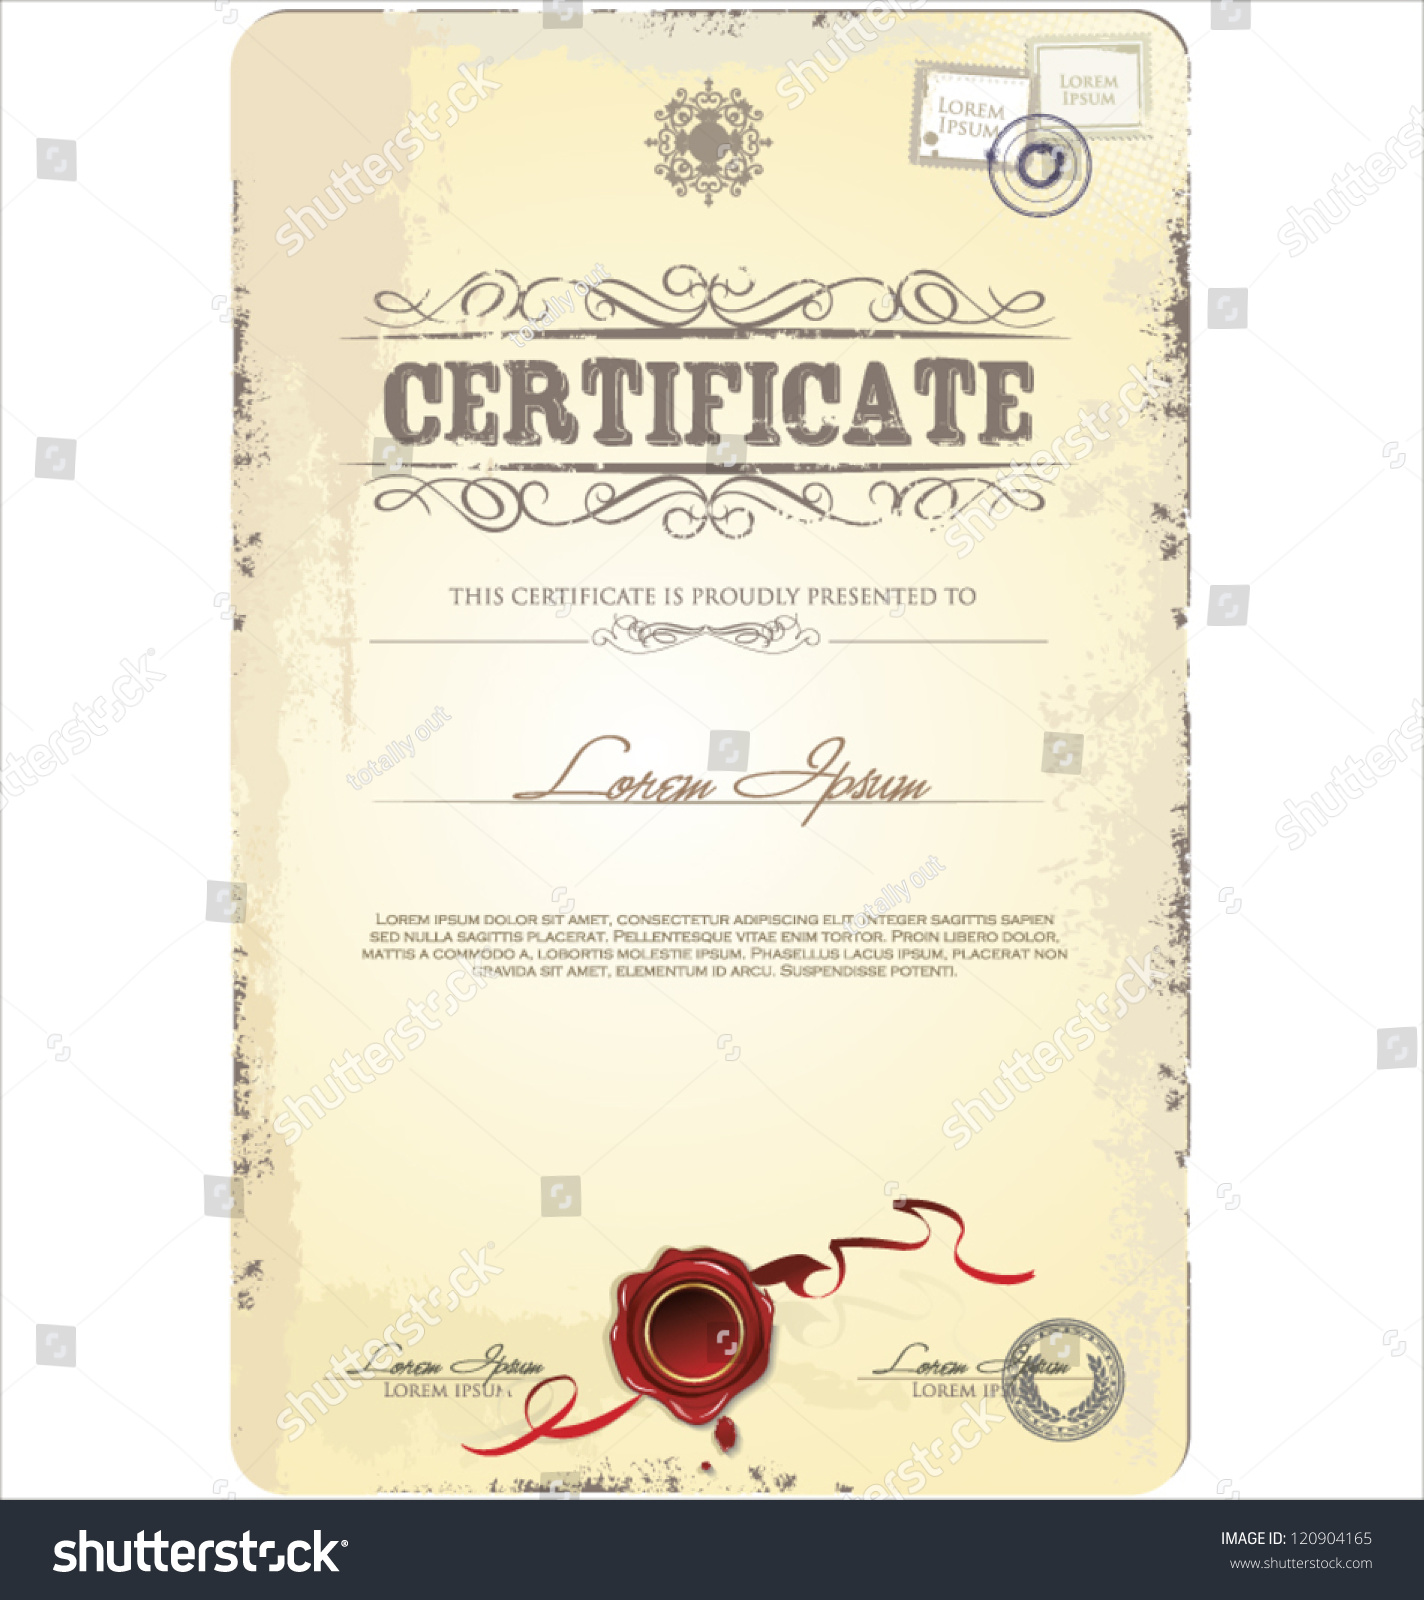 Old Vintage Certificate Template Vector Illustration Stock Vector